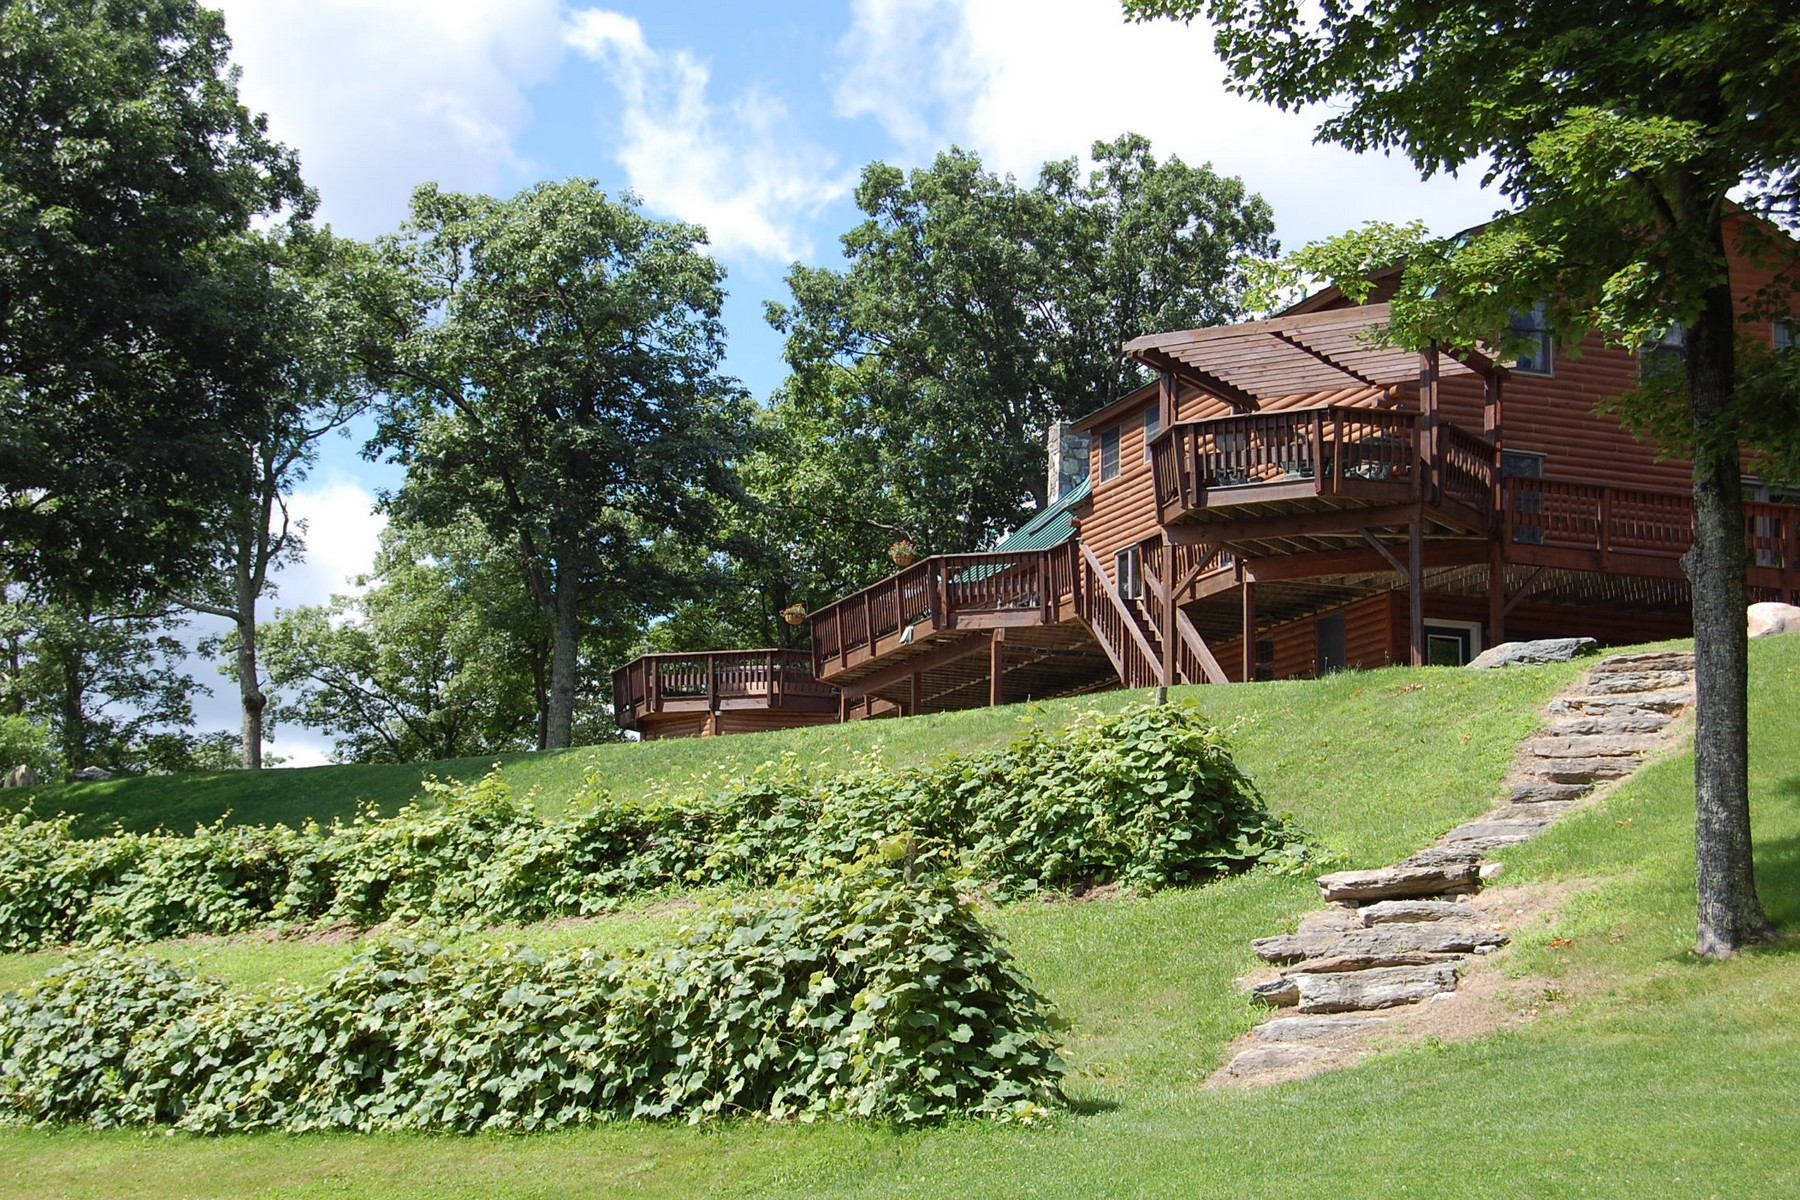 Casa Unifamiliar por un Venta en Sanctuary with Acreage 680 Lincoln Ln Sandgate, Vermont, 05250 Estados Unidos